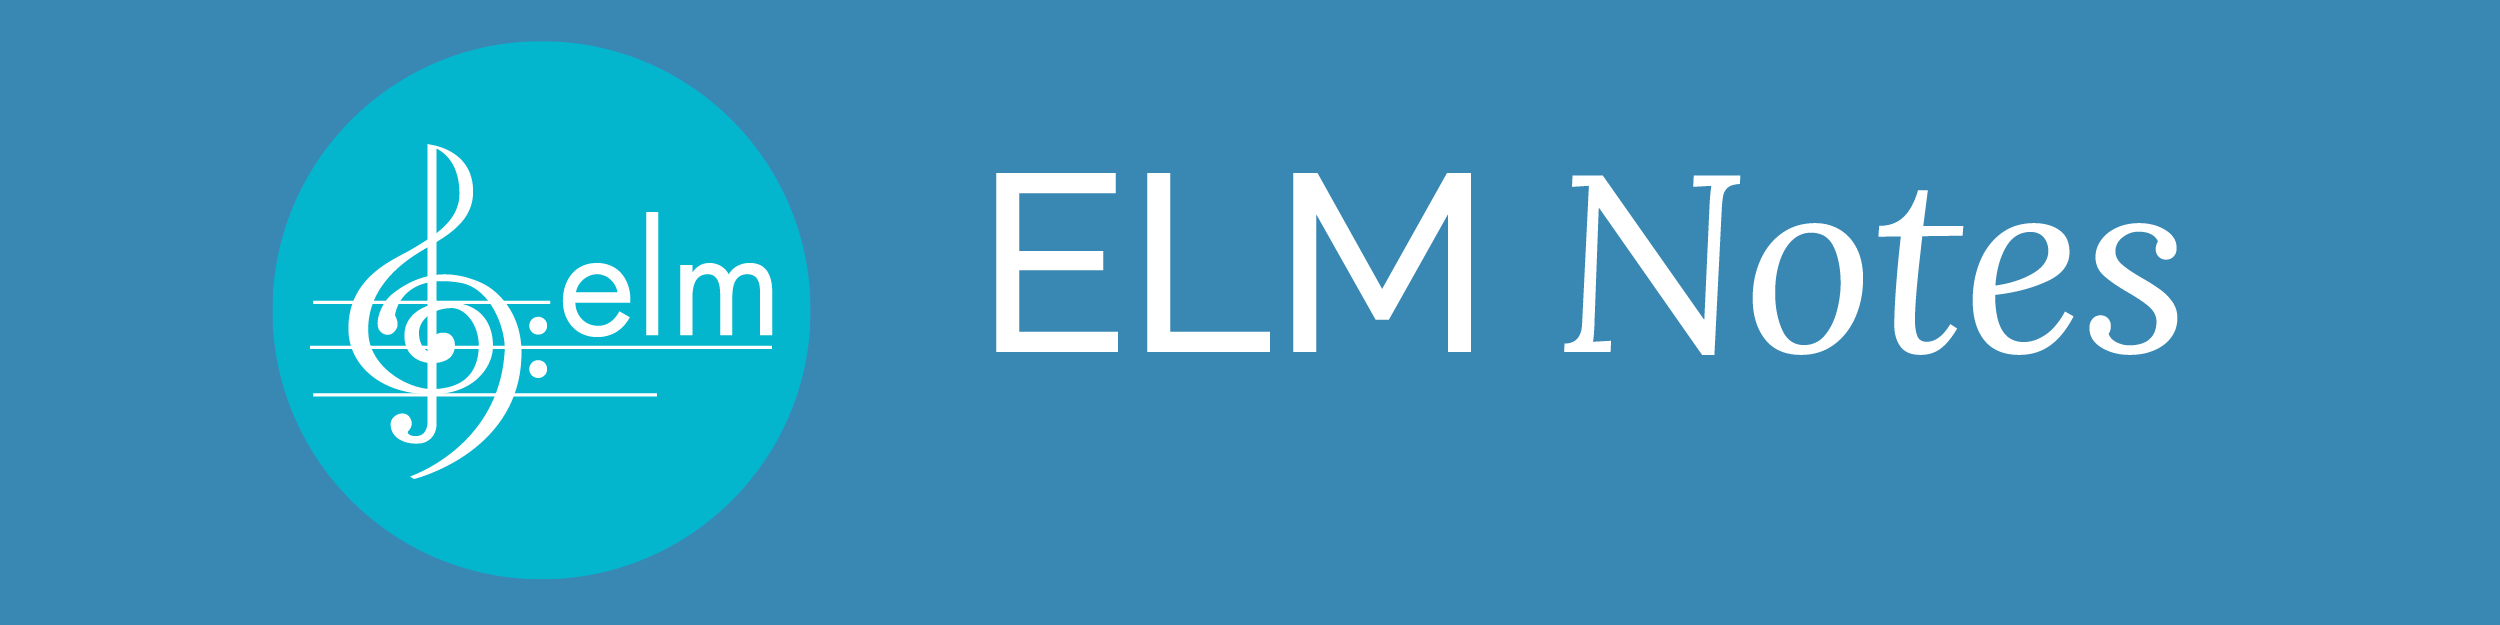 ELM Notes